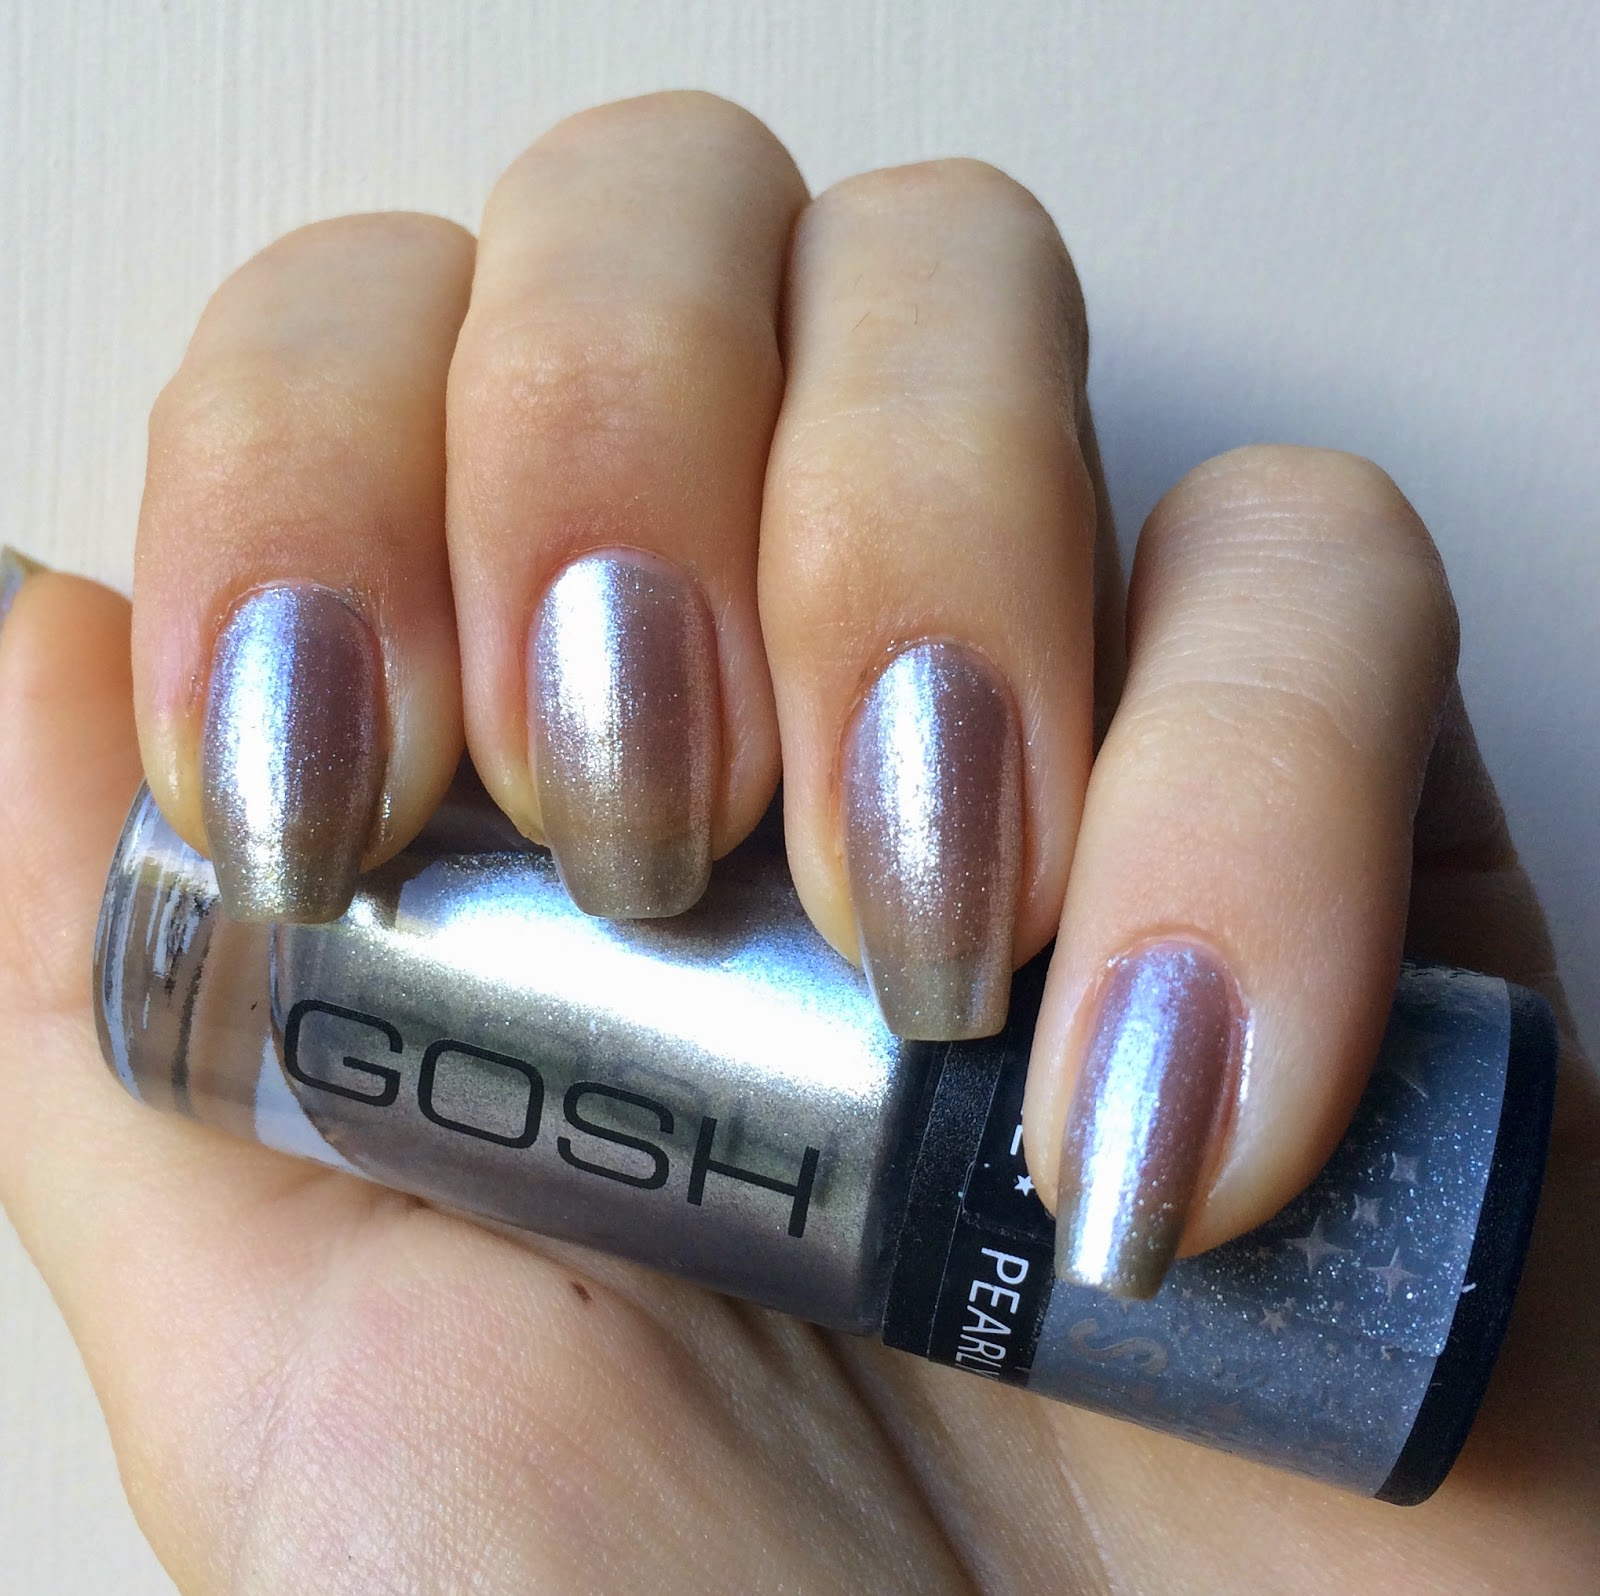 gosh-stardust-nail-lacquer-collection-2014-moonlight